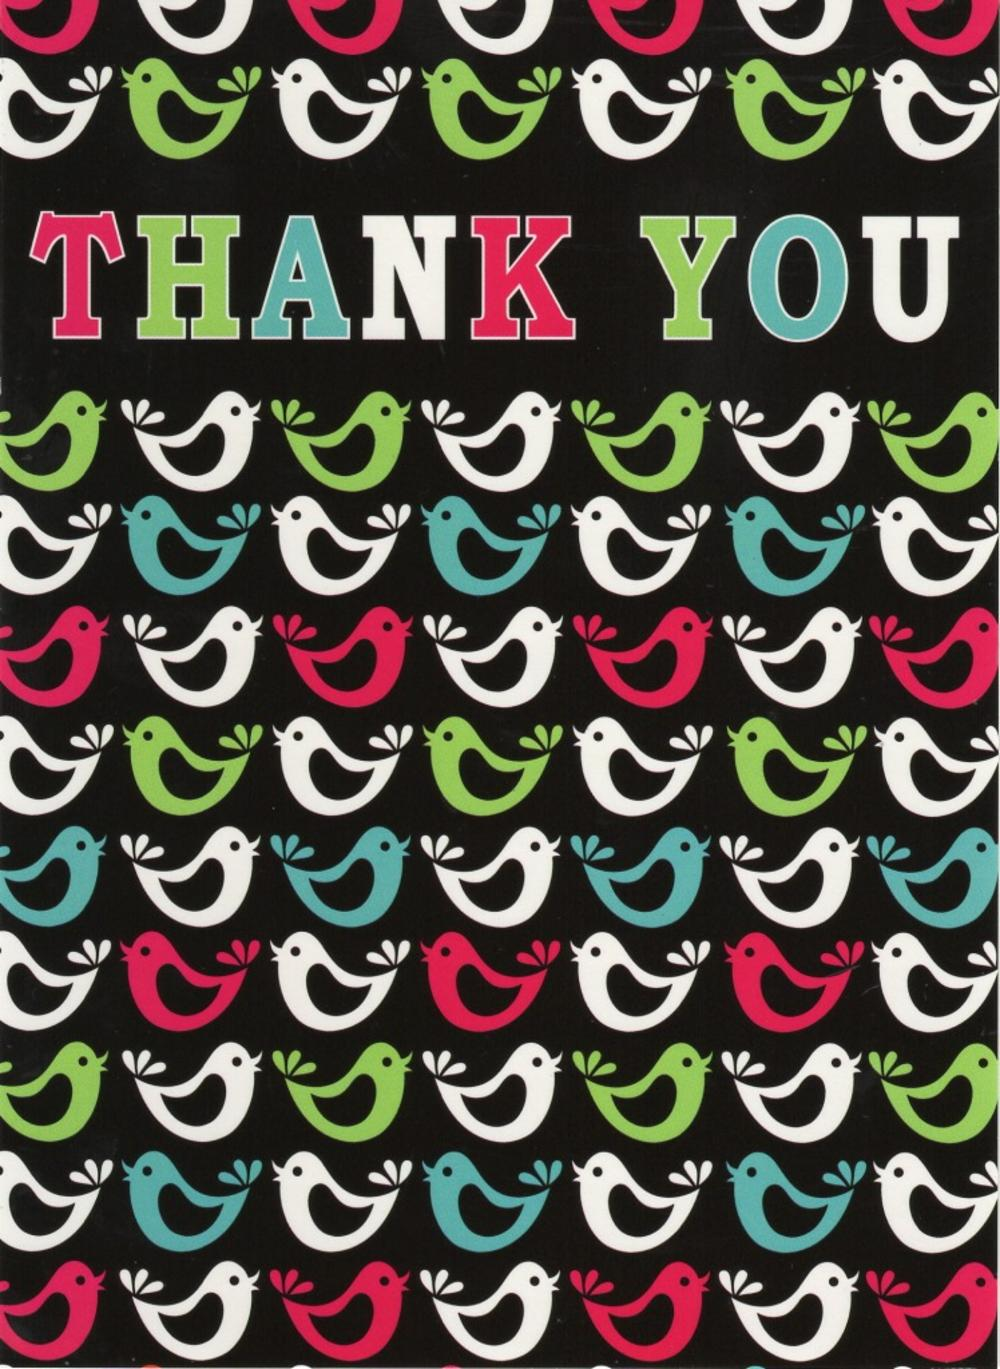 Thank You Patterned Greeting Card